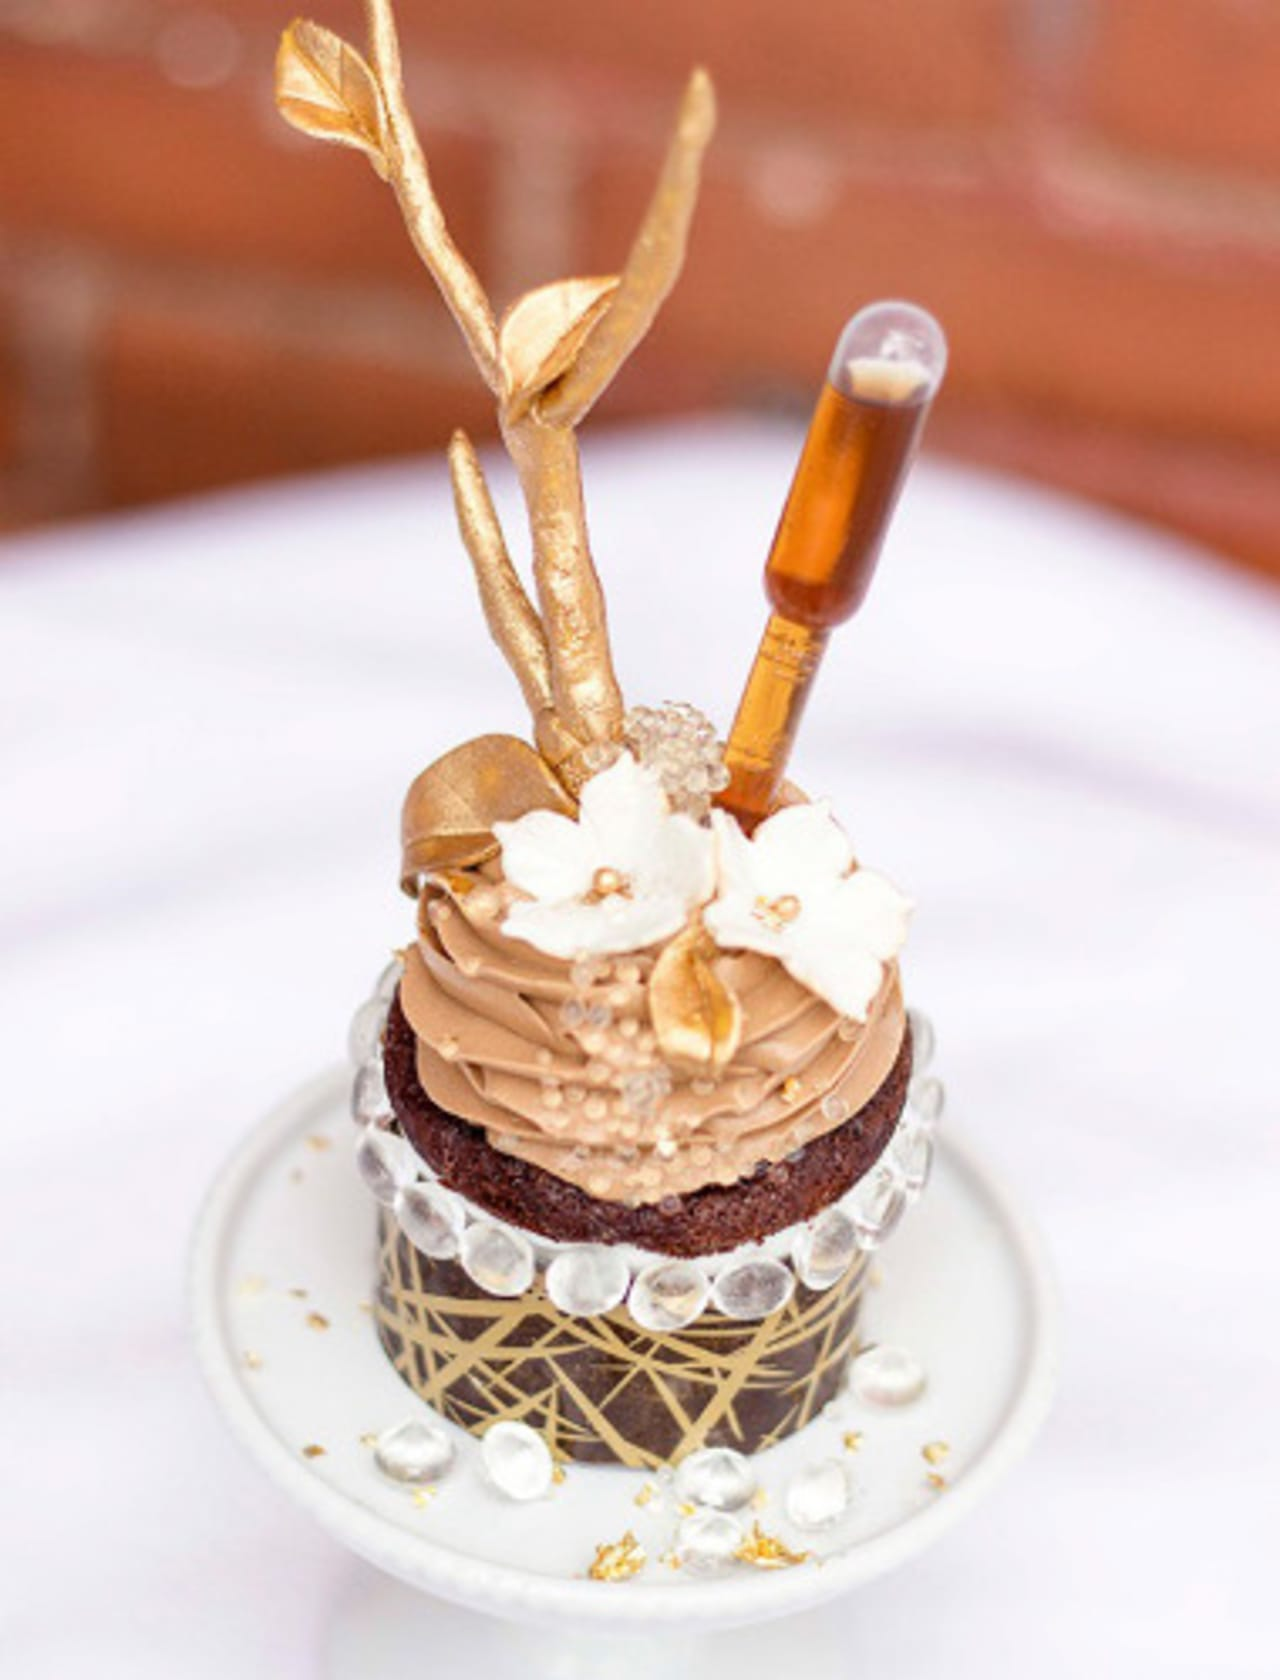 Enjoyable The Worlds Most Expensive Cupcake Costs 900 Smdh First We Feast Funny Birthday Cards Online Ioscodamsfinfo